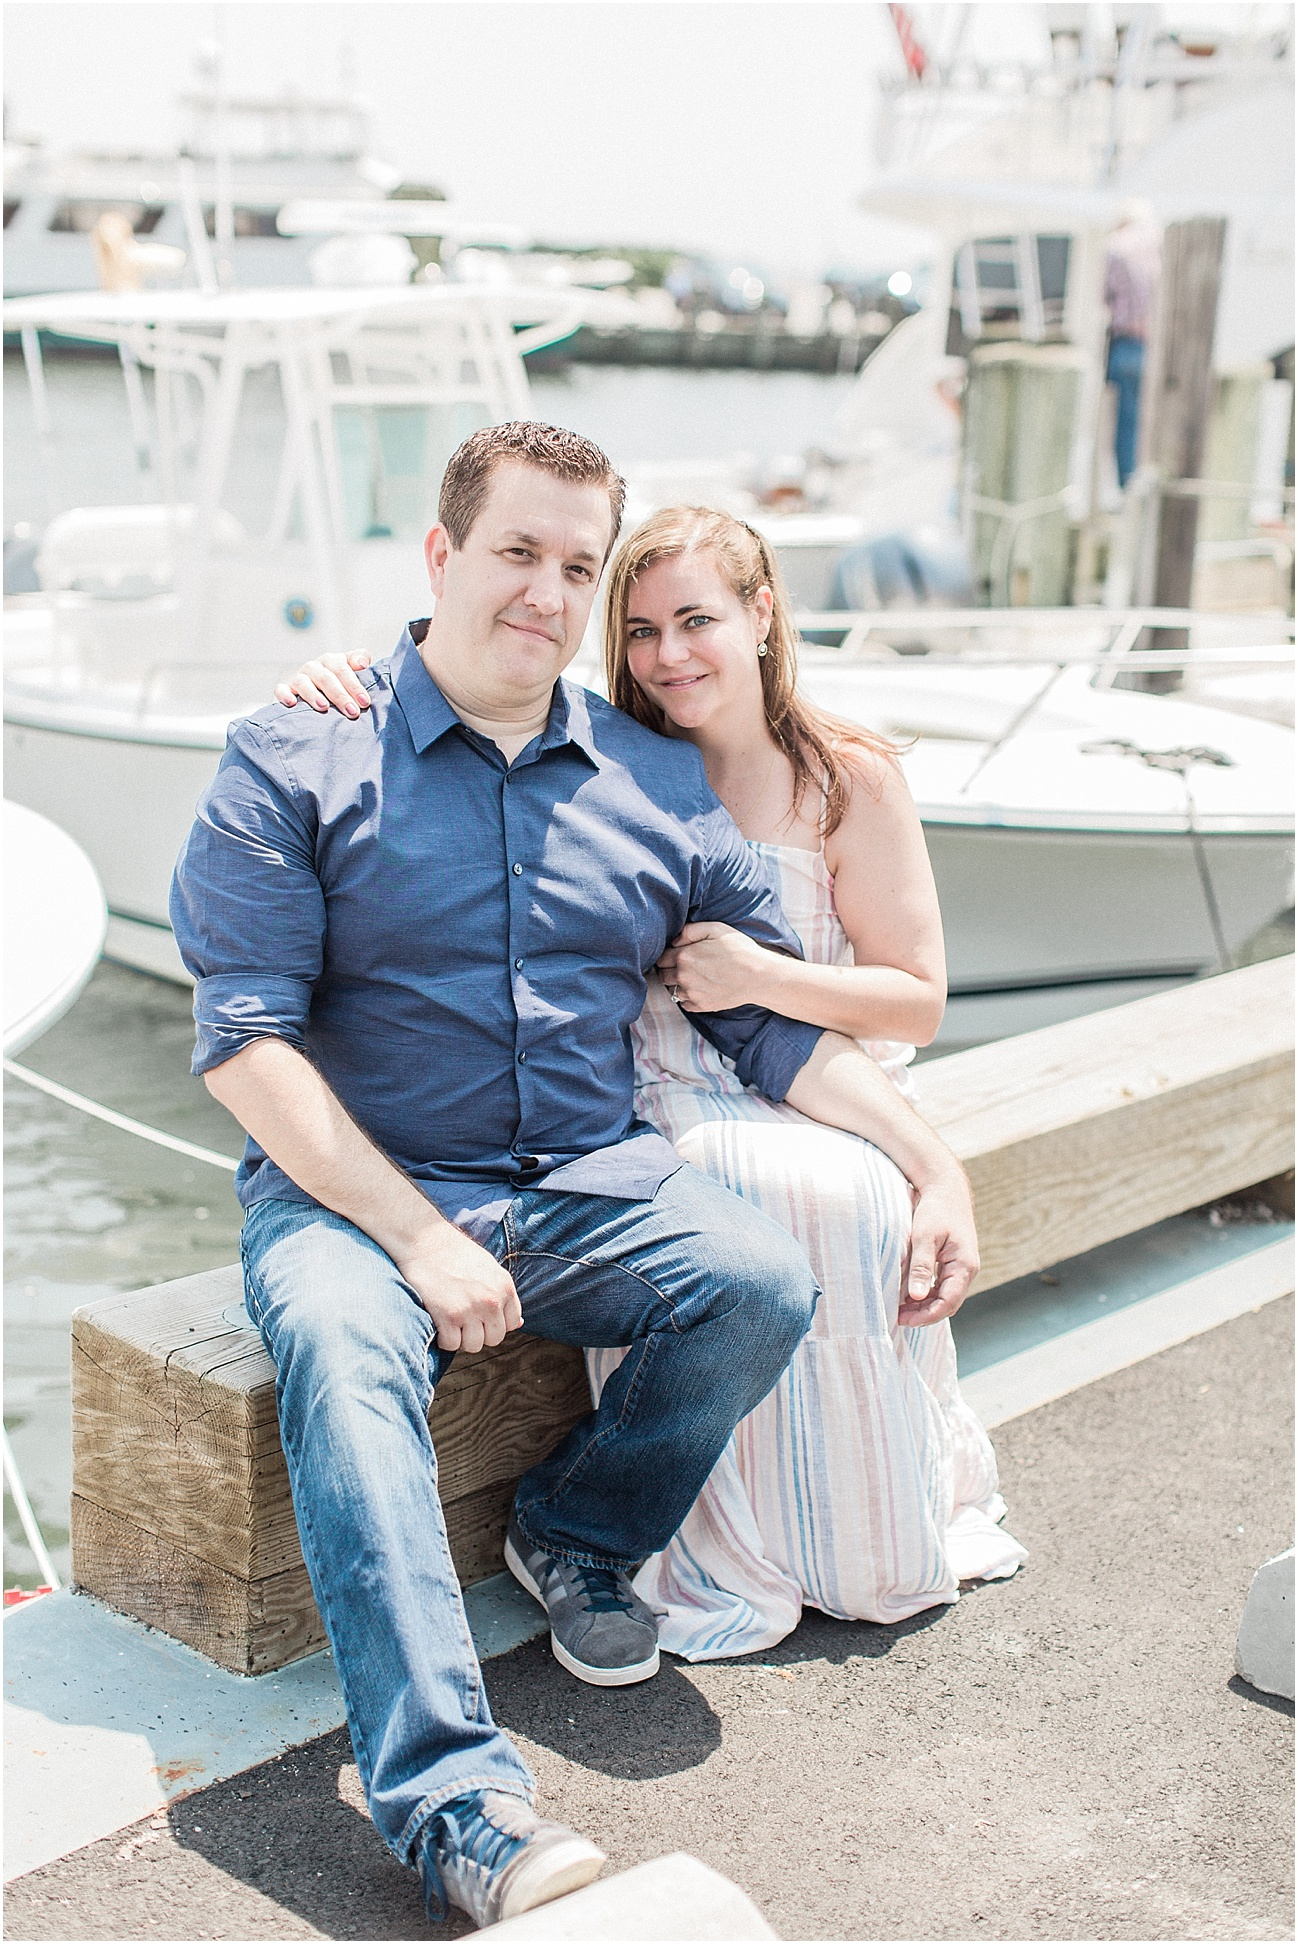 falmouth_liz_eric_proposal_boat_parents_sign_will_you_marry_me_cape_cod_boston_wedding_photographer_meredith_jane_photography_photo_0514.jpg